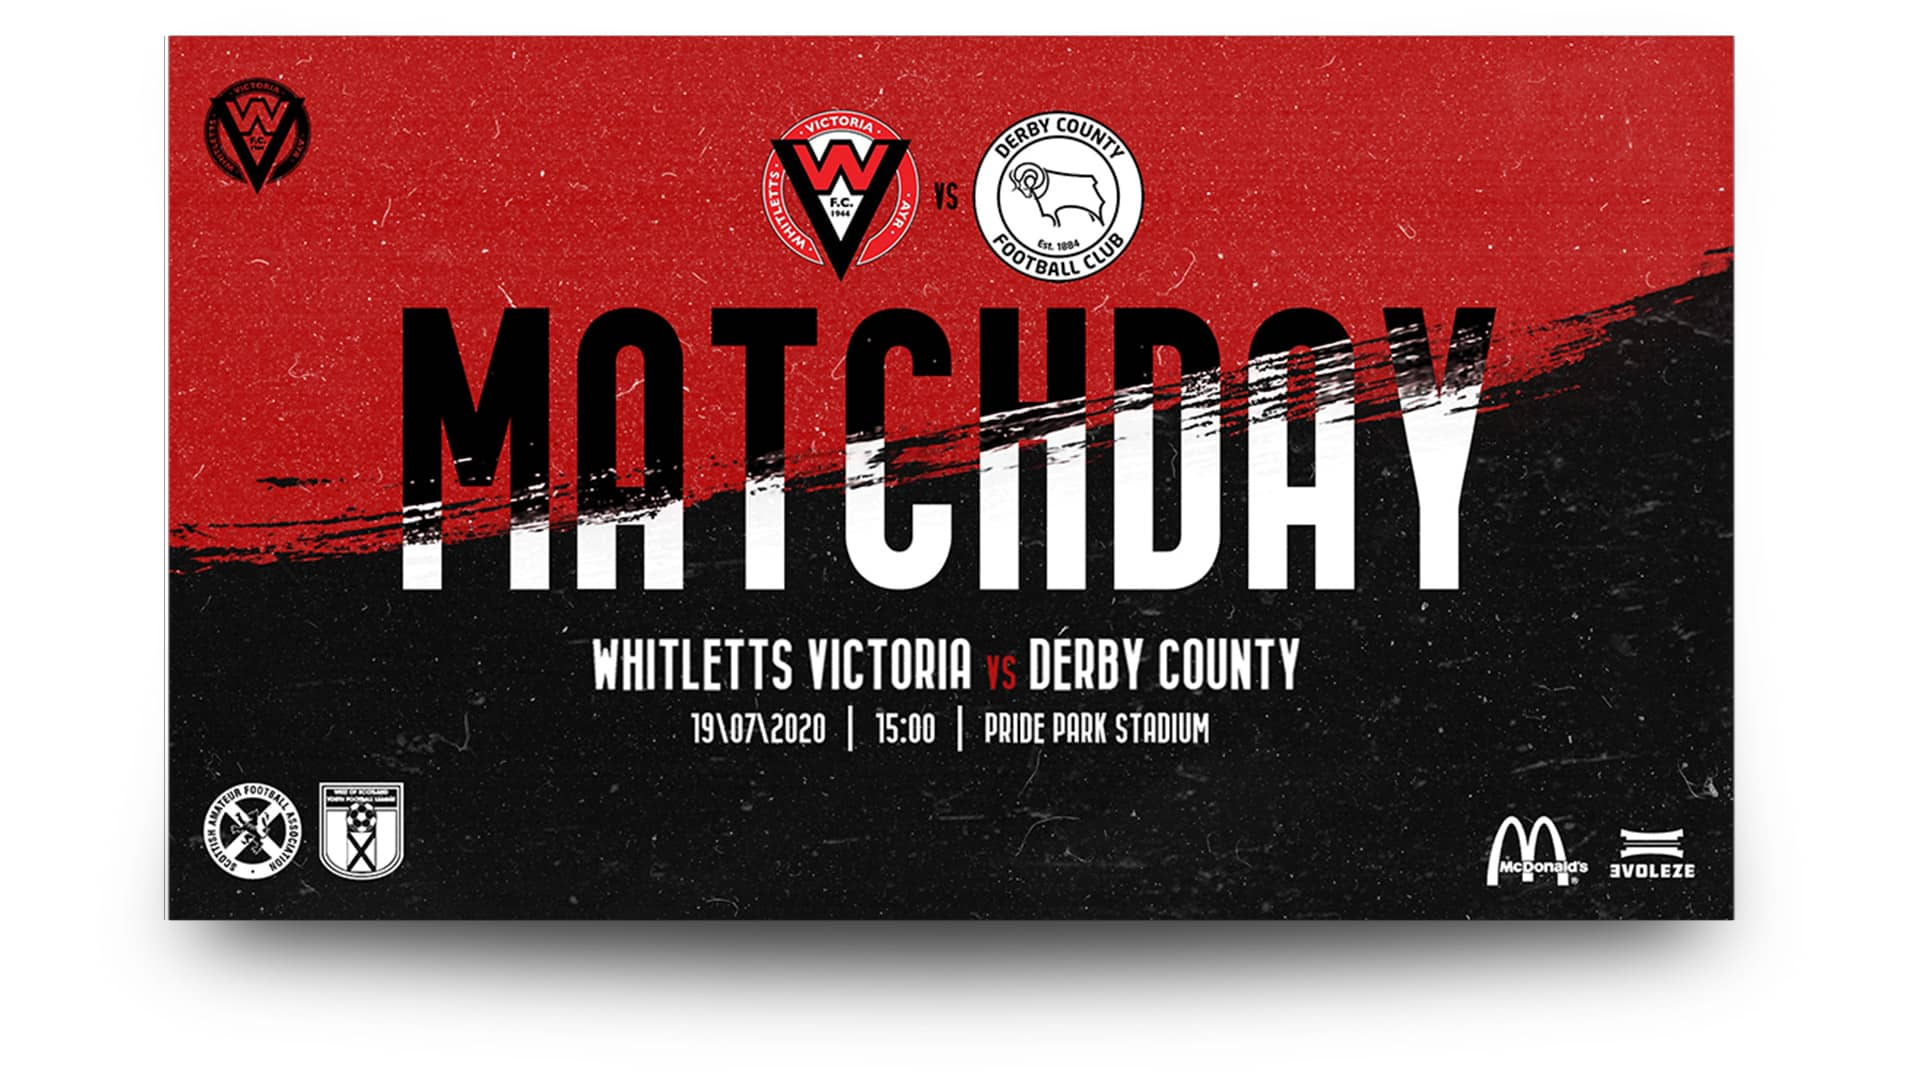 whitletts Victoria fc - matchday graphics